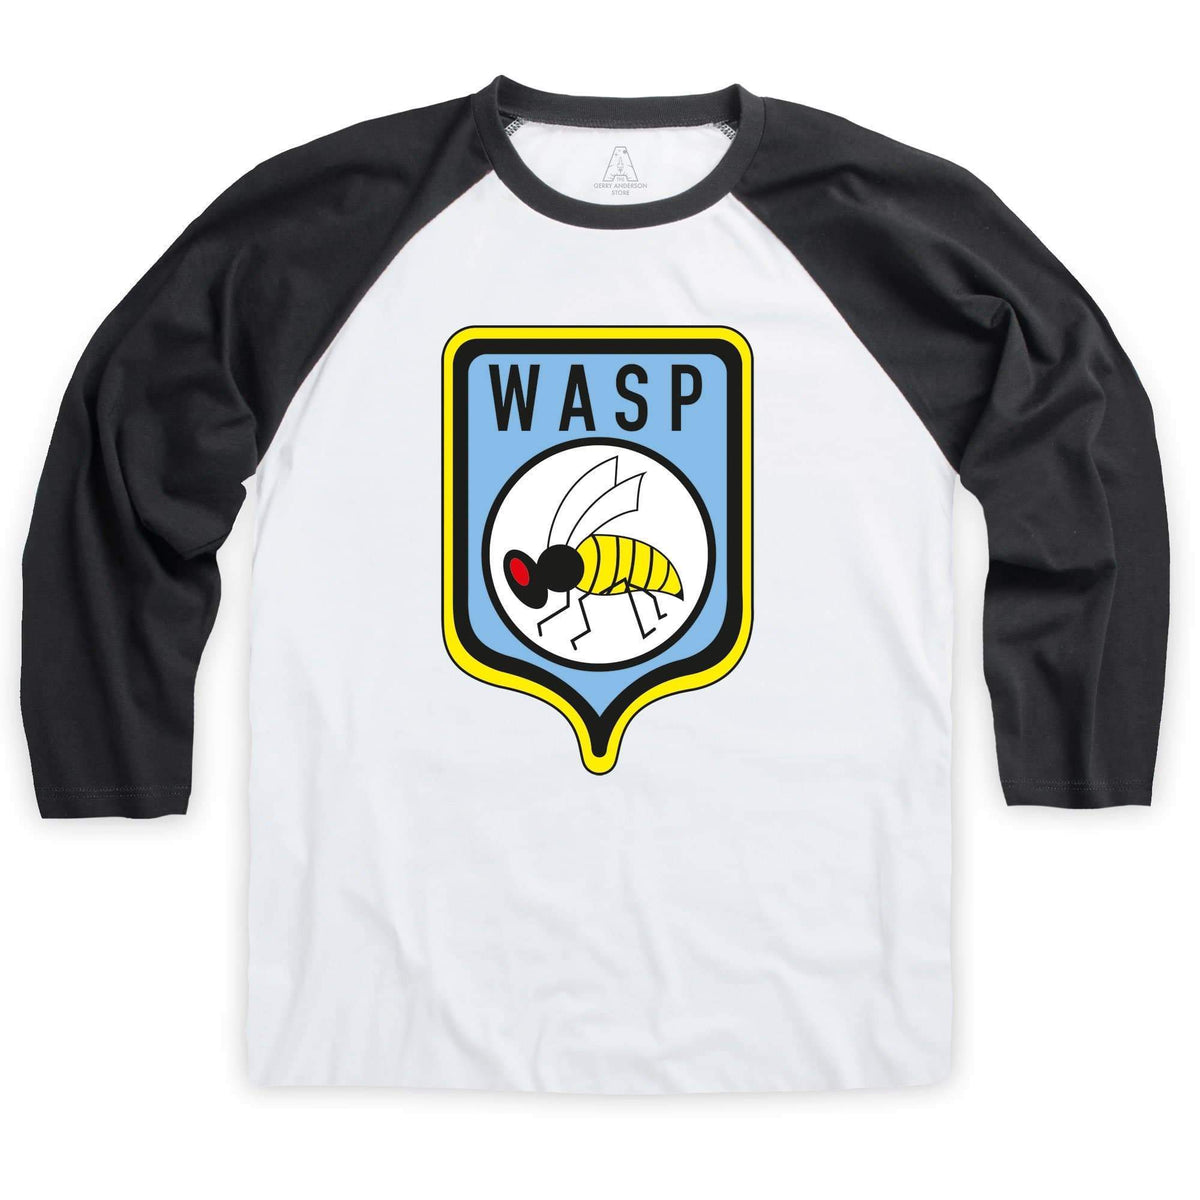 Stingray WASP Logo Baseball T-Shirt [Official & Exclusive] - The Gerry Anderson Store